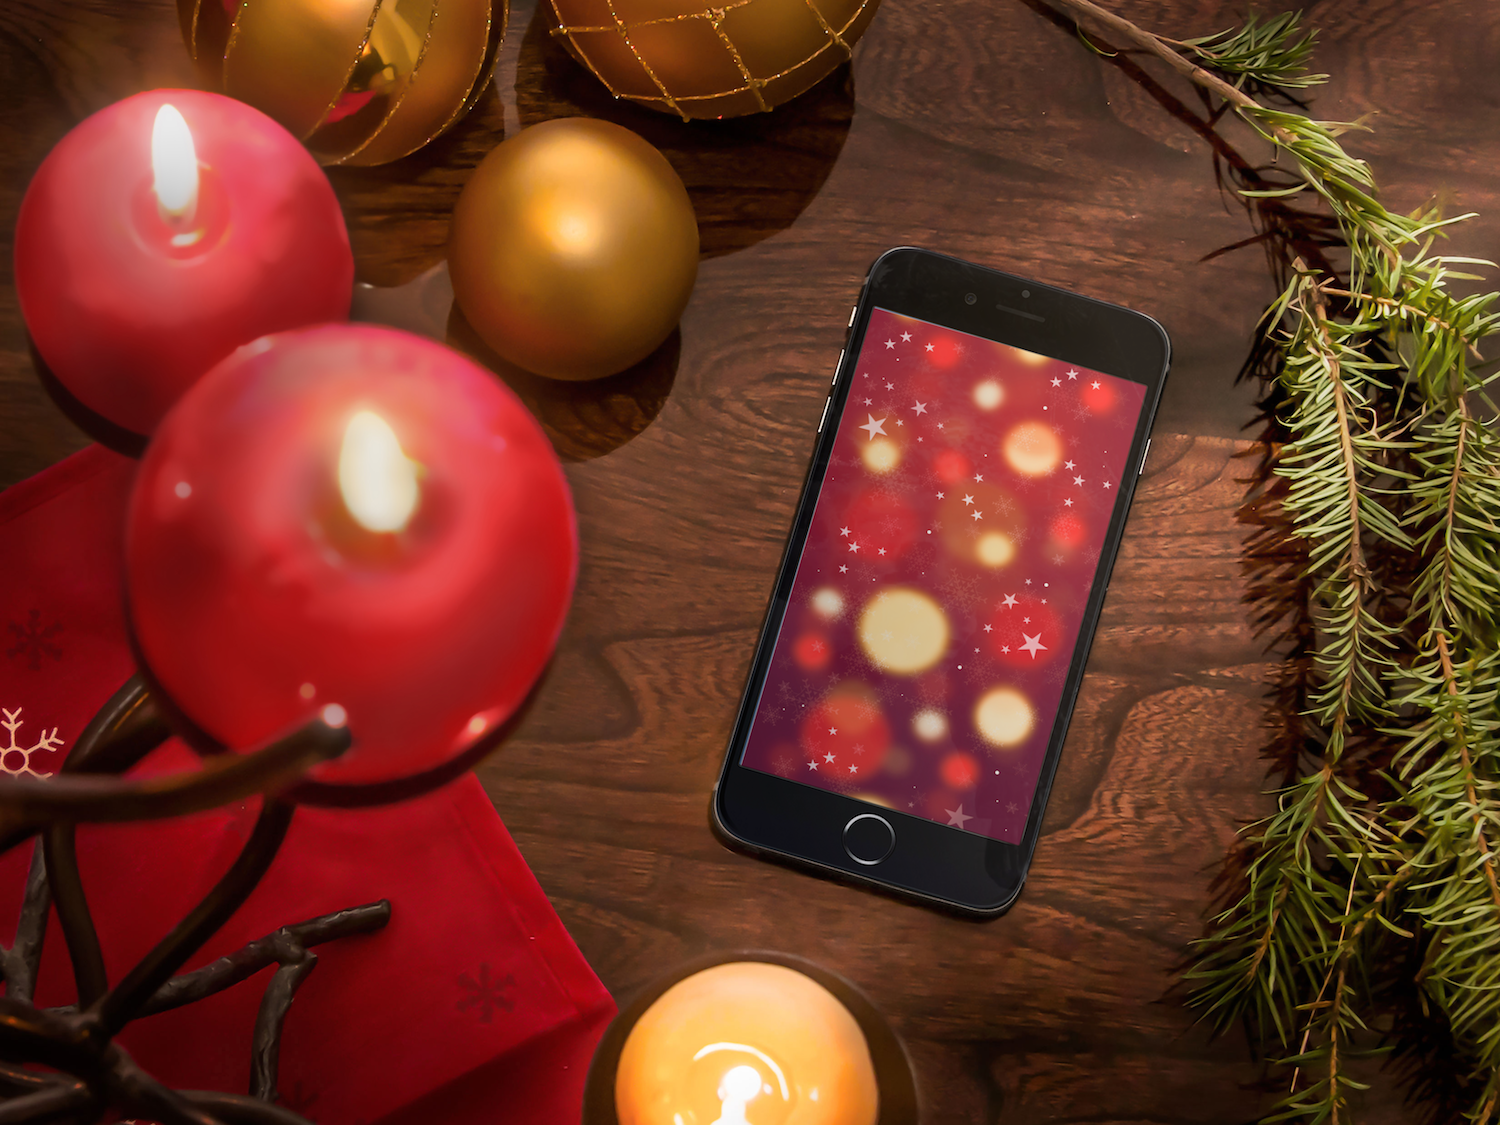 Snowy winter Christmas wallpapers for iPhone 1500x1125